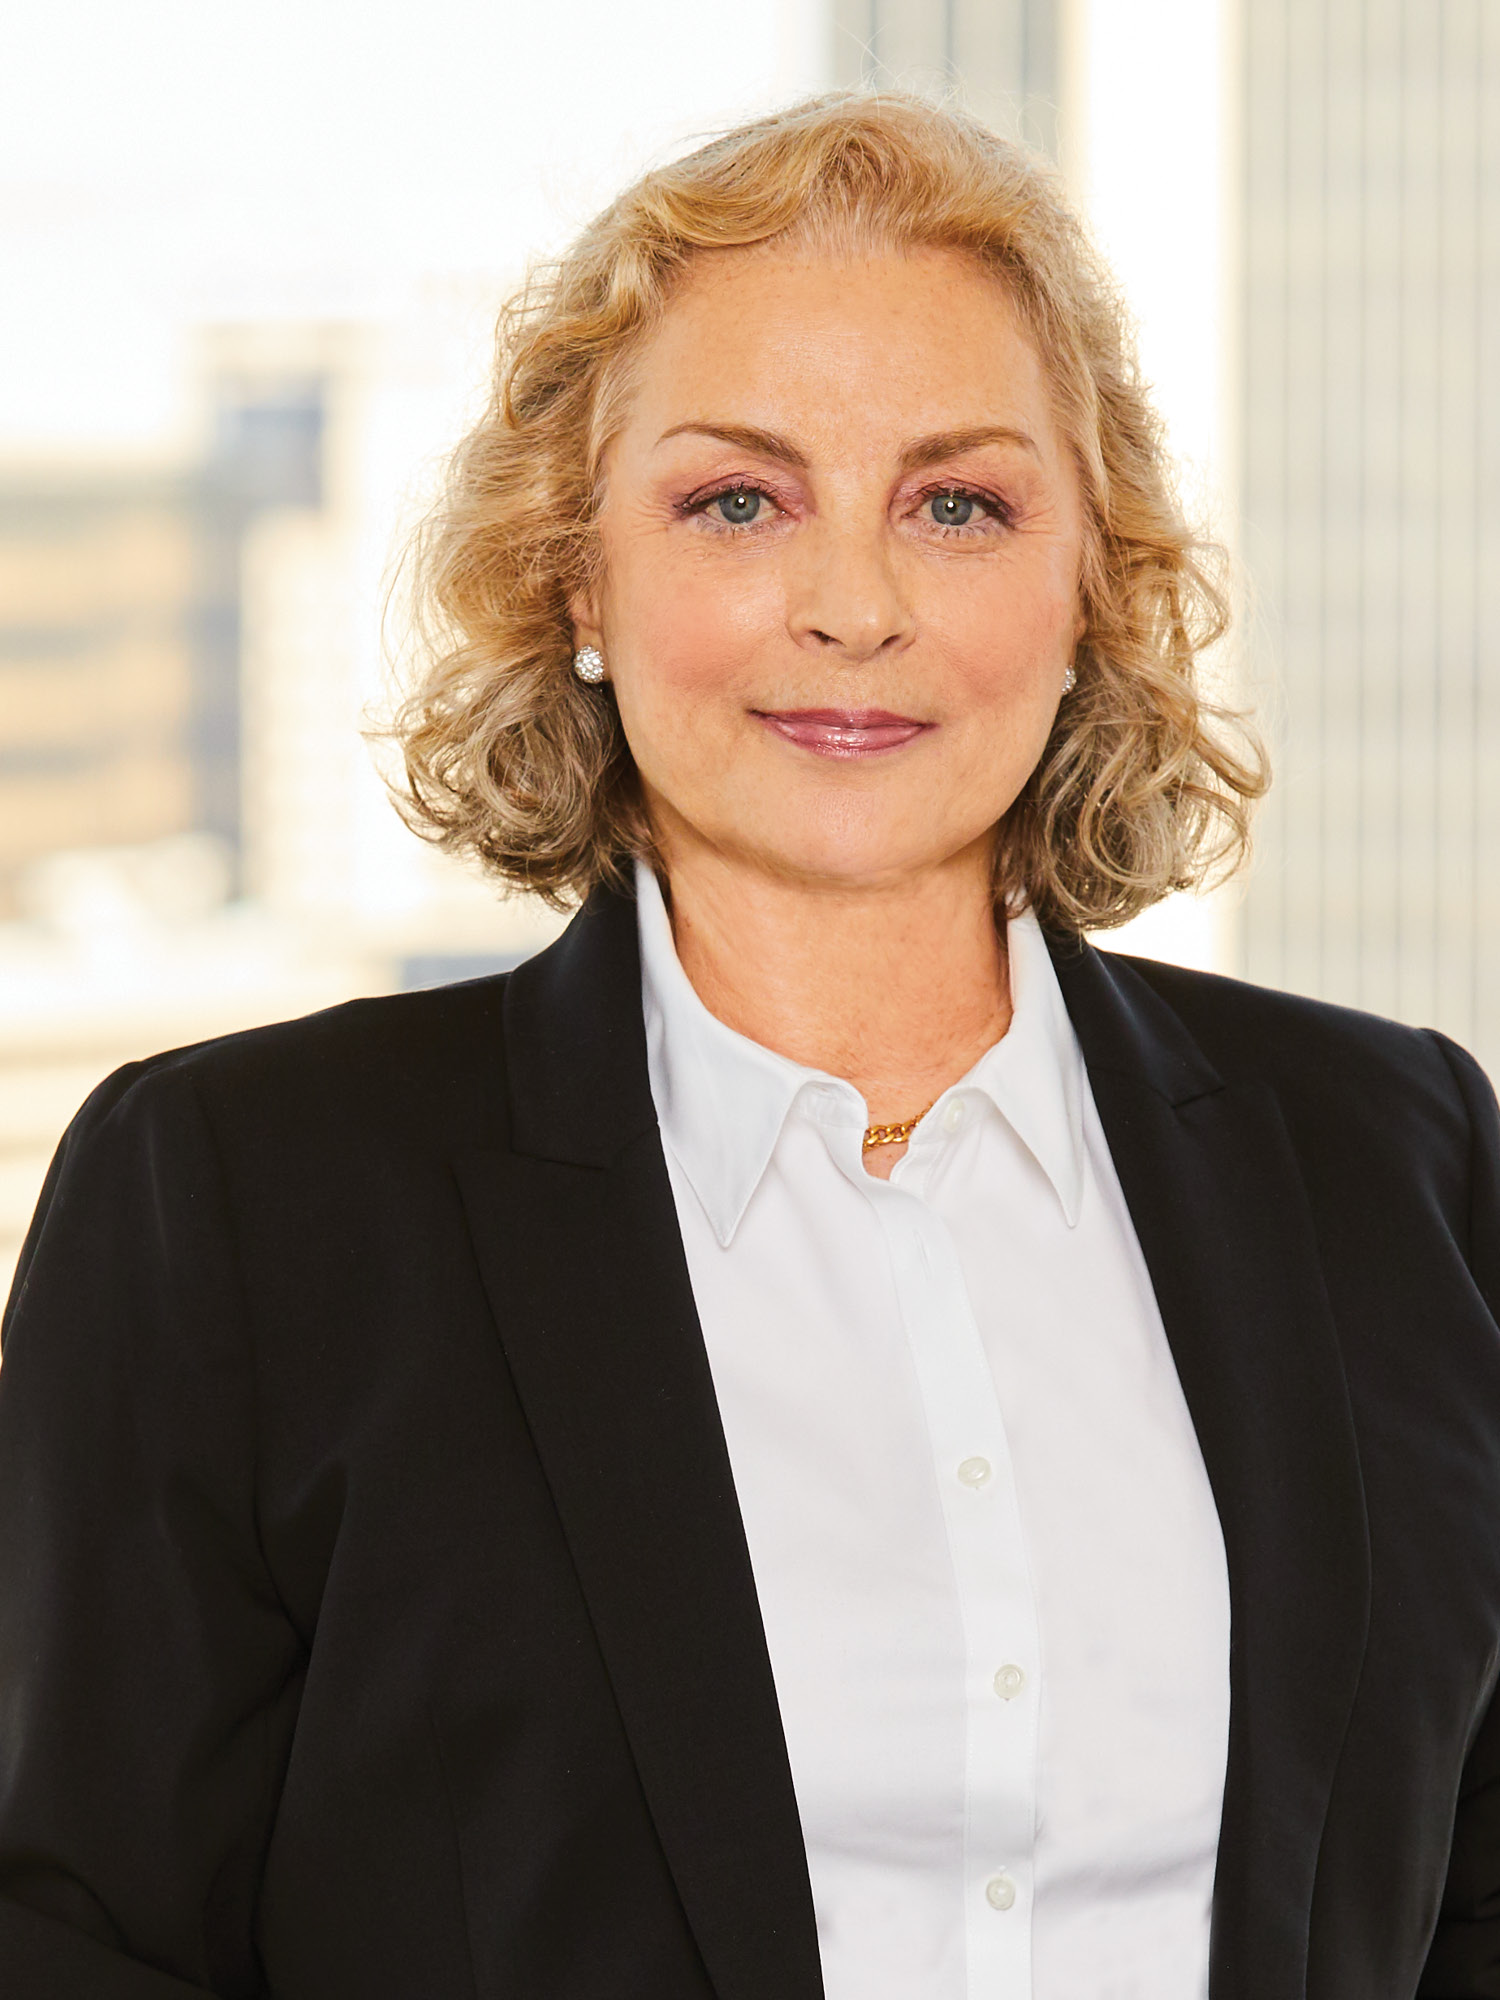 Adriana Cutolo-Beyer, a top realtor in New York City for Corcoran, a real estate firm in Brooklyn Heights.